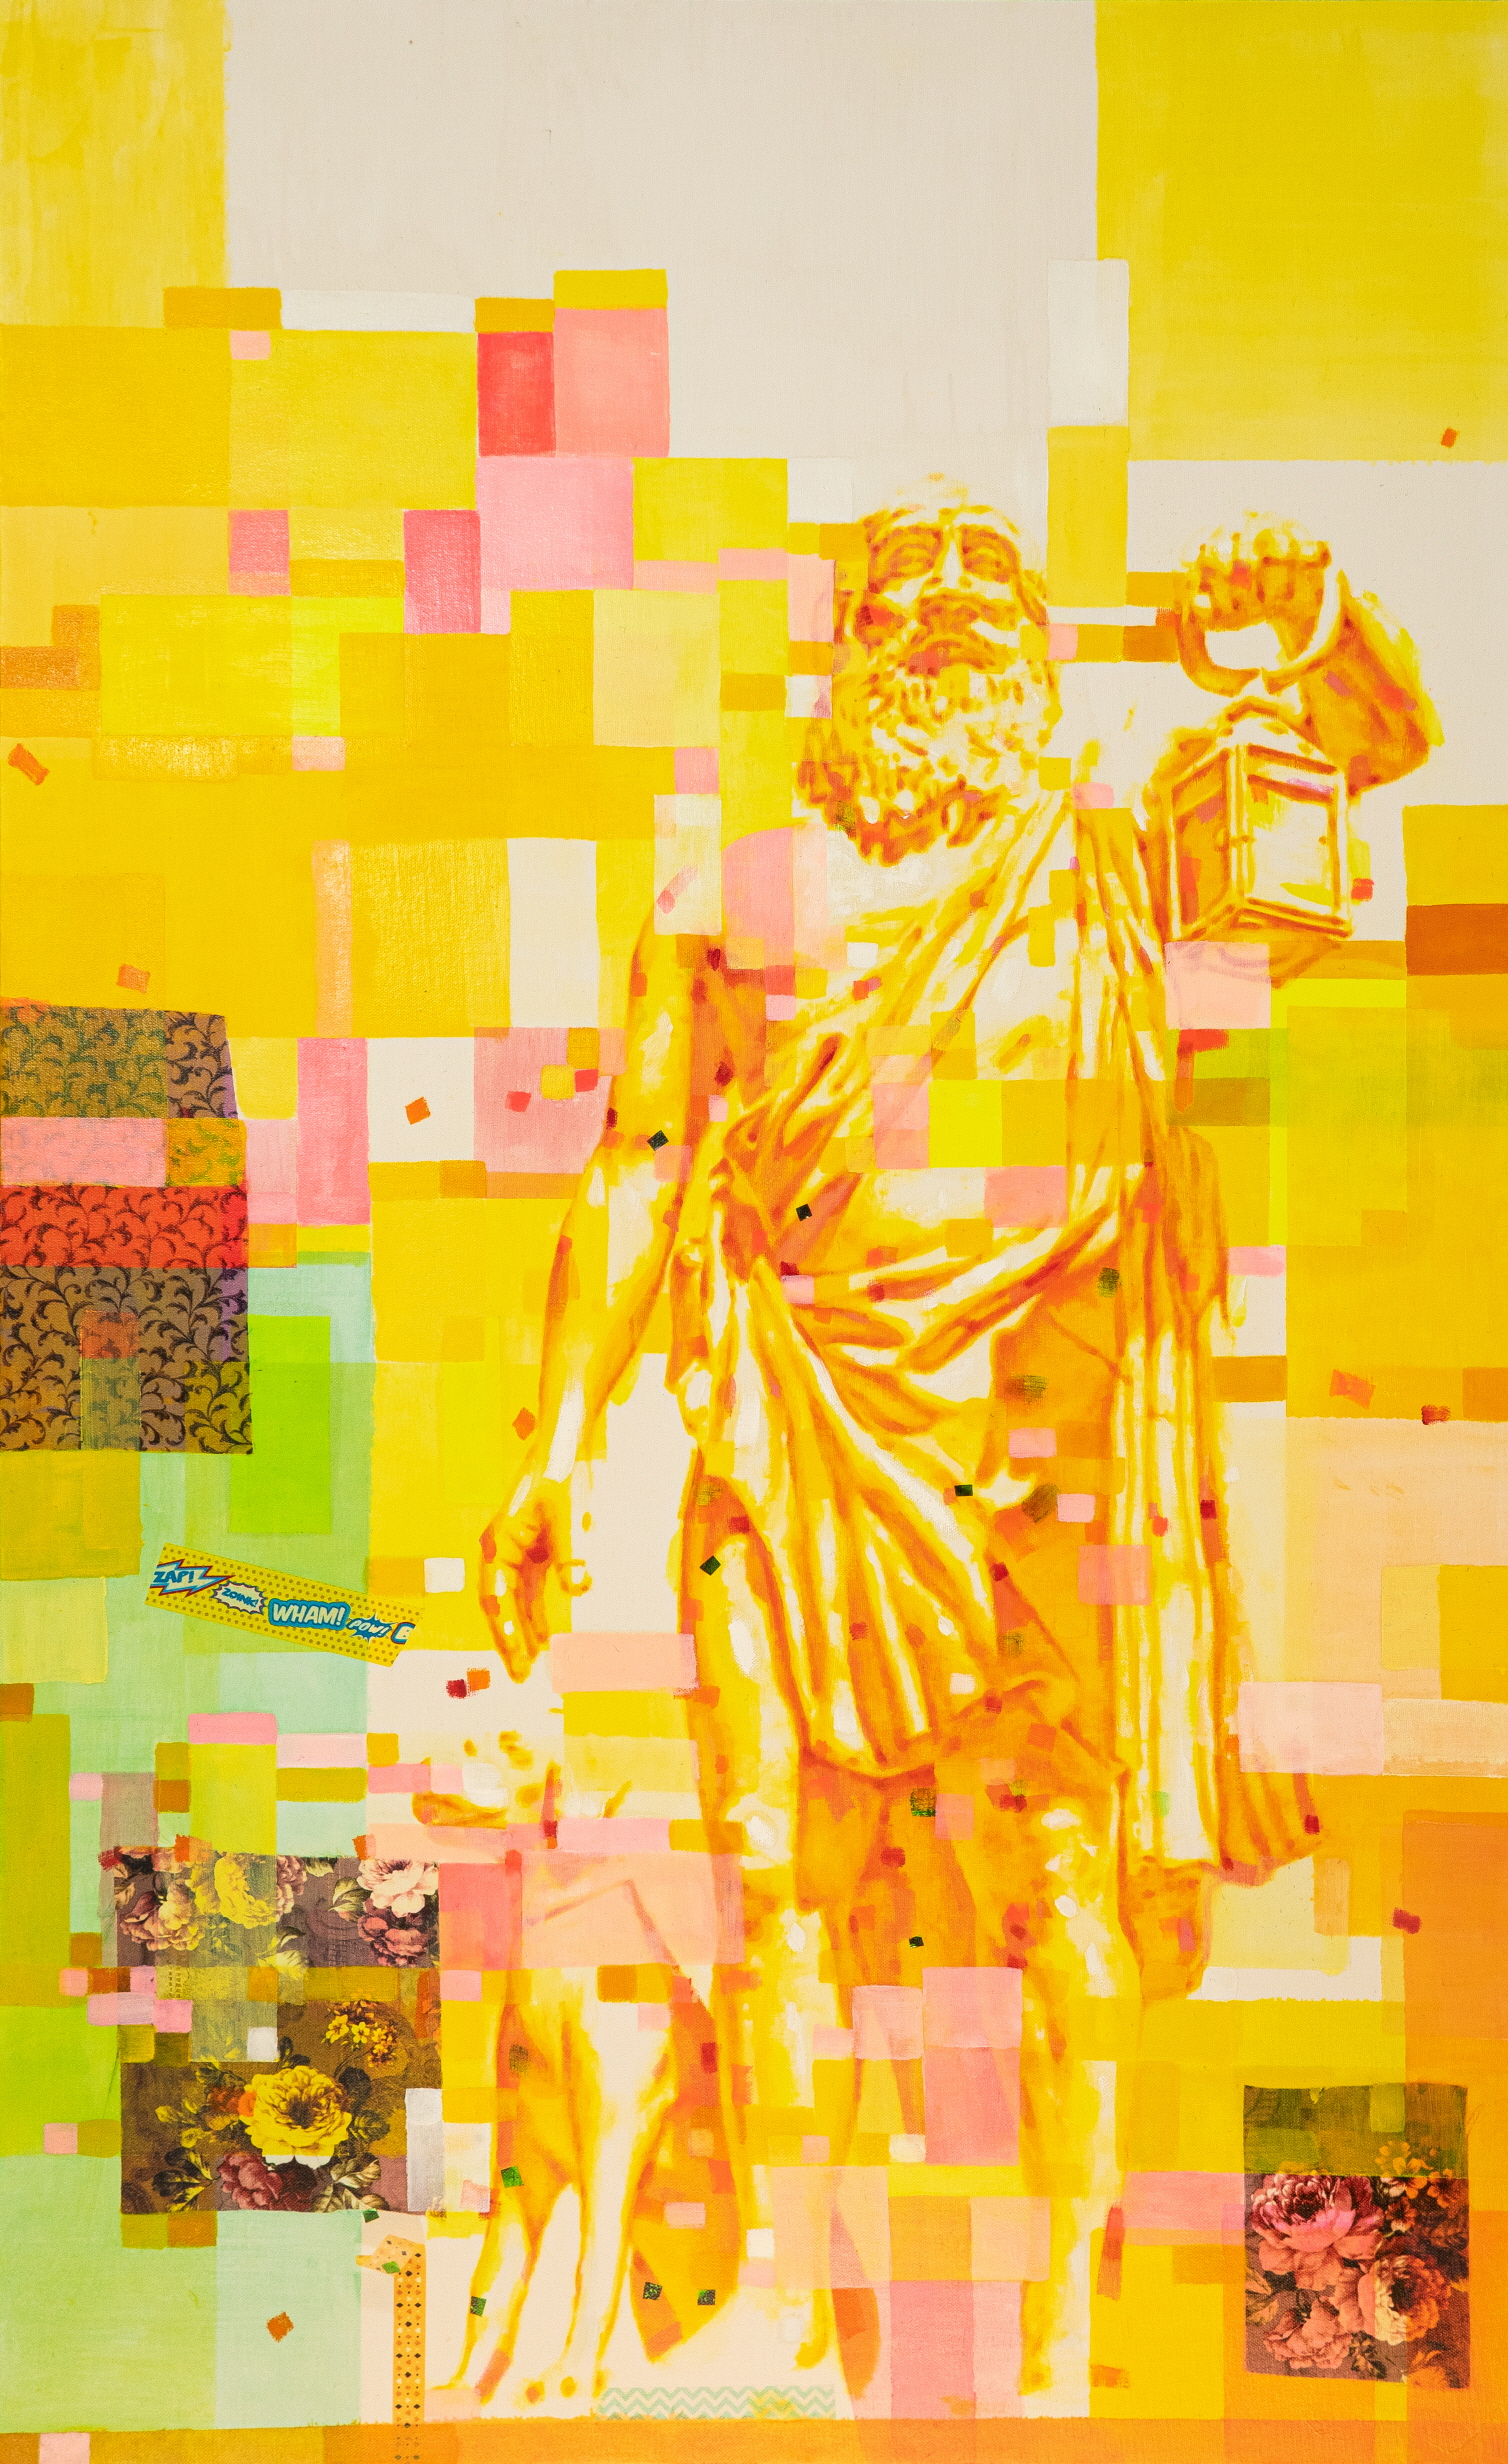 Memories of Colors, Diogenes